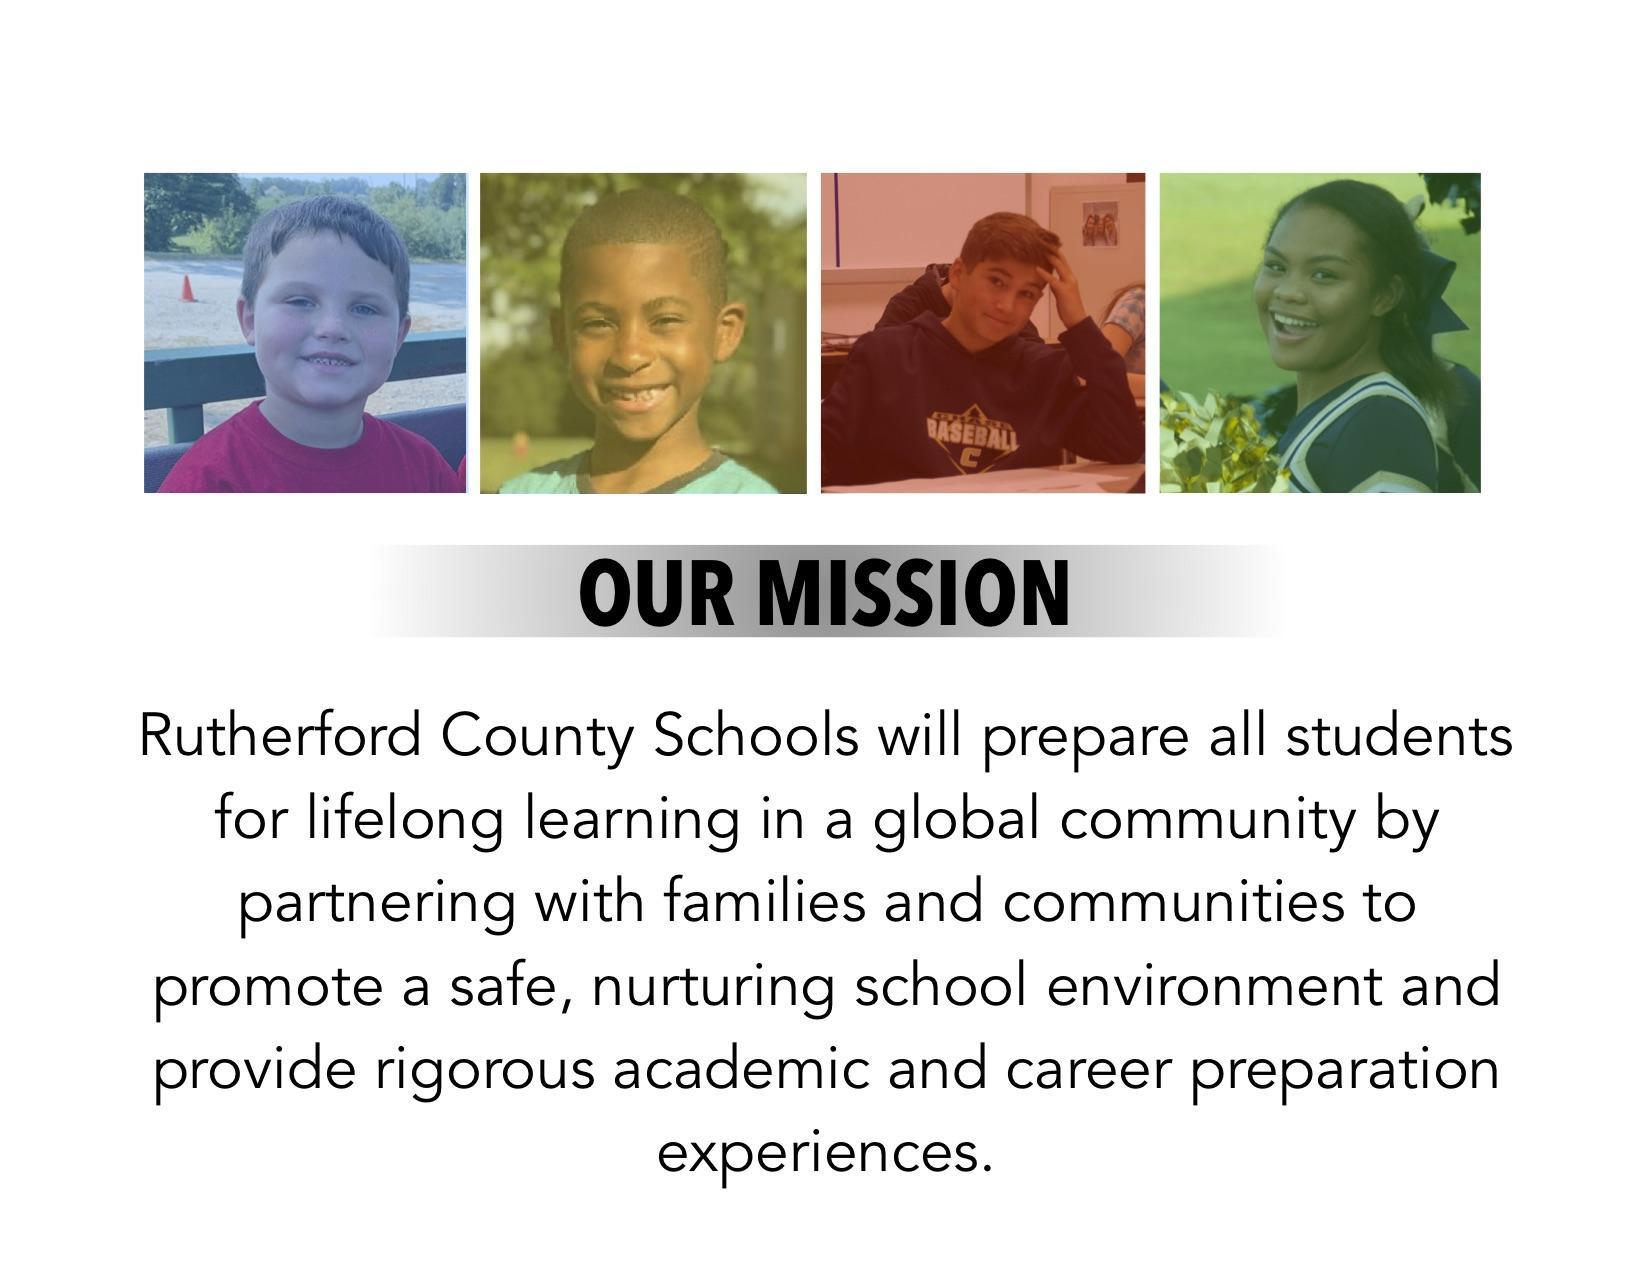 Rutherford County Schools will prepare all students for lifelong learning in a global community by partnering with families and communities to promote a safe, nurturing school environment and provide rigorous academic and career preparation experiences.